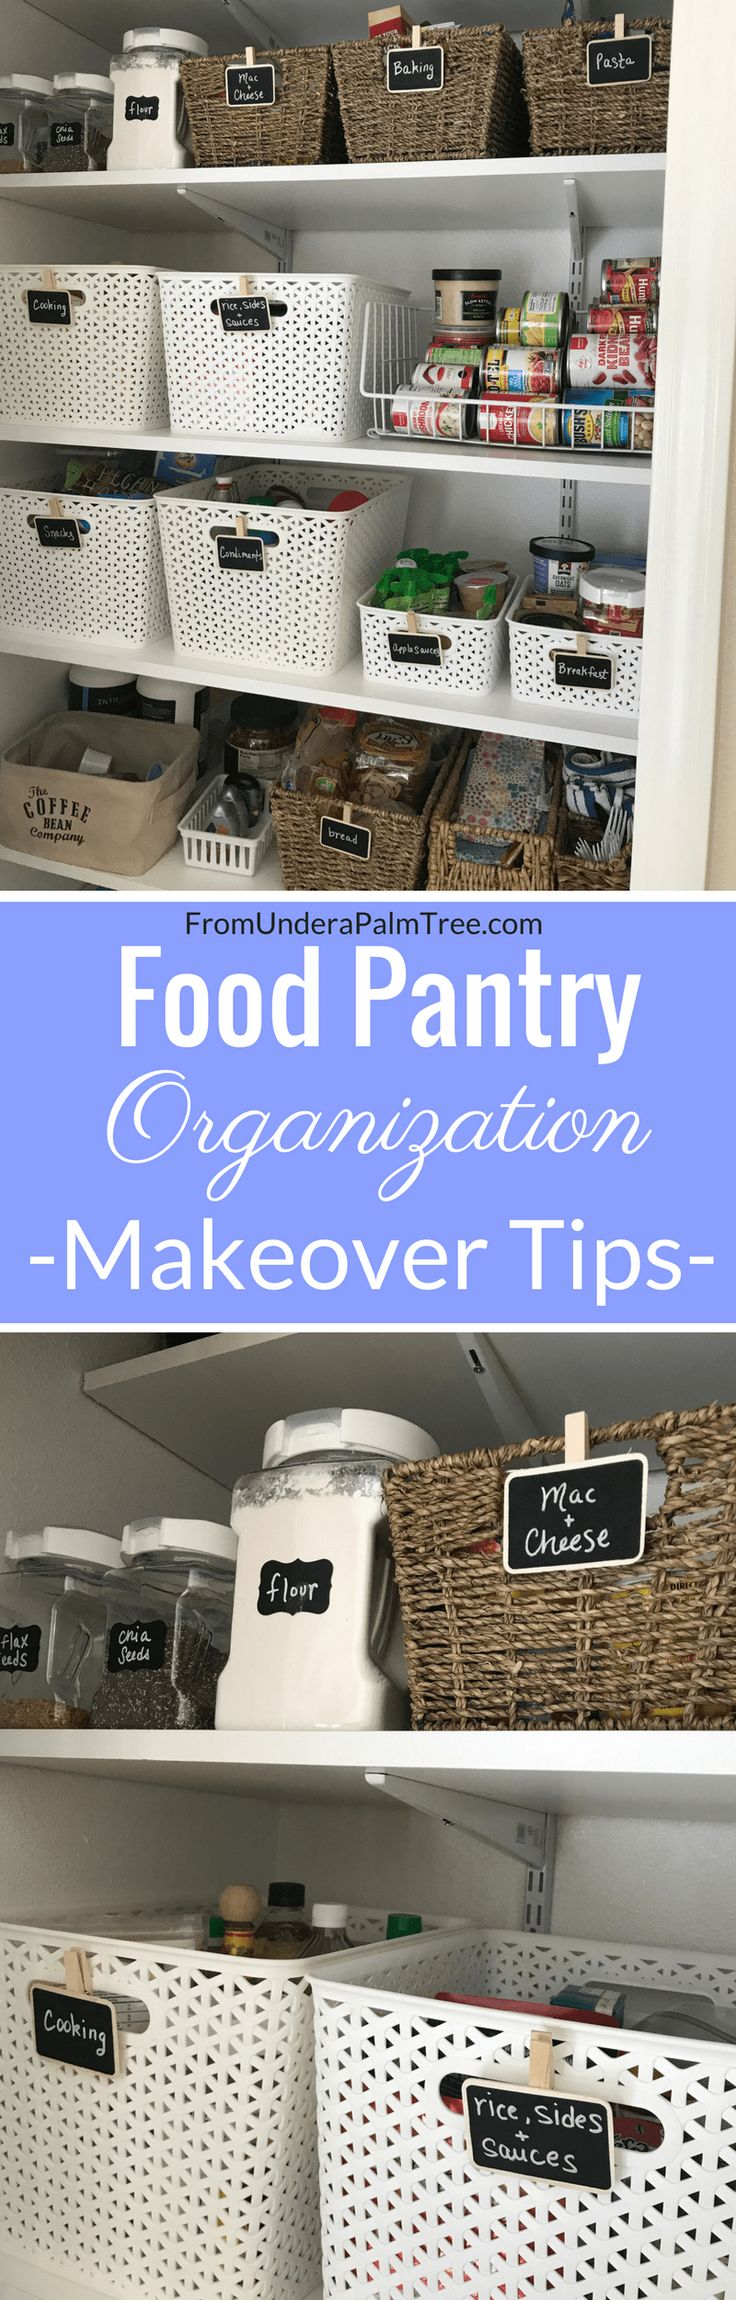 food pantry | food pantry organization | how to organize my pantry | pantry organization tips | clean my pantry | organization tips | organized living | organize | organizational living | organization | kitchen organization | how to organize my kitchen | organized kitchen | organized closet | organized food pantry | organized pantry |